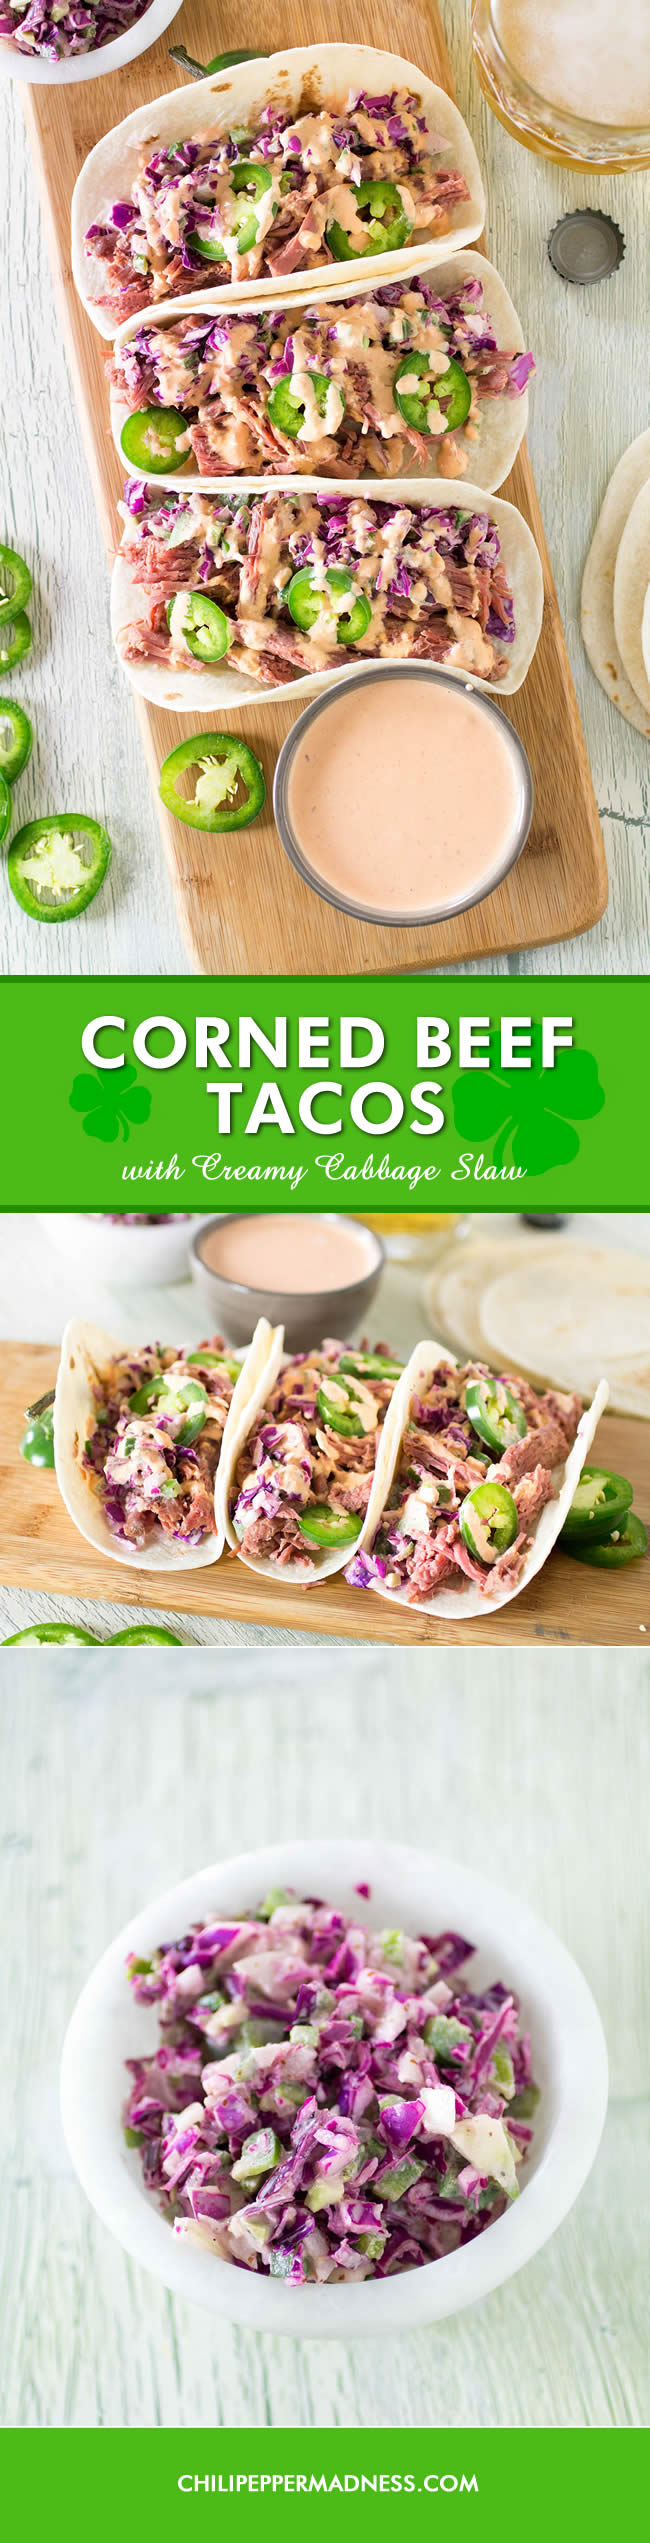 Corned Beef Tacos with Creamy Cabbage Slaw - Recipe